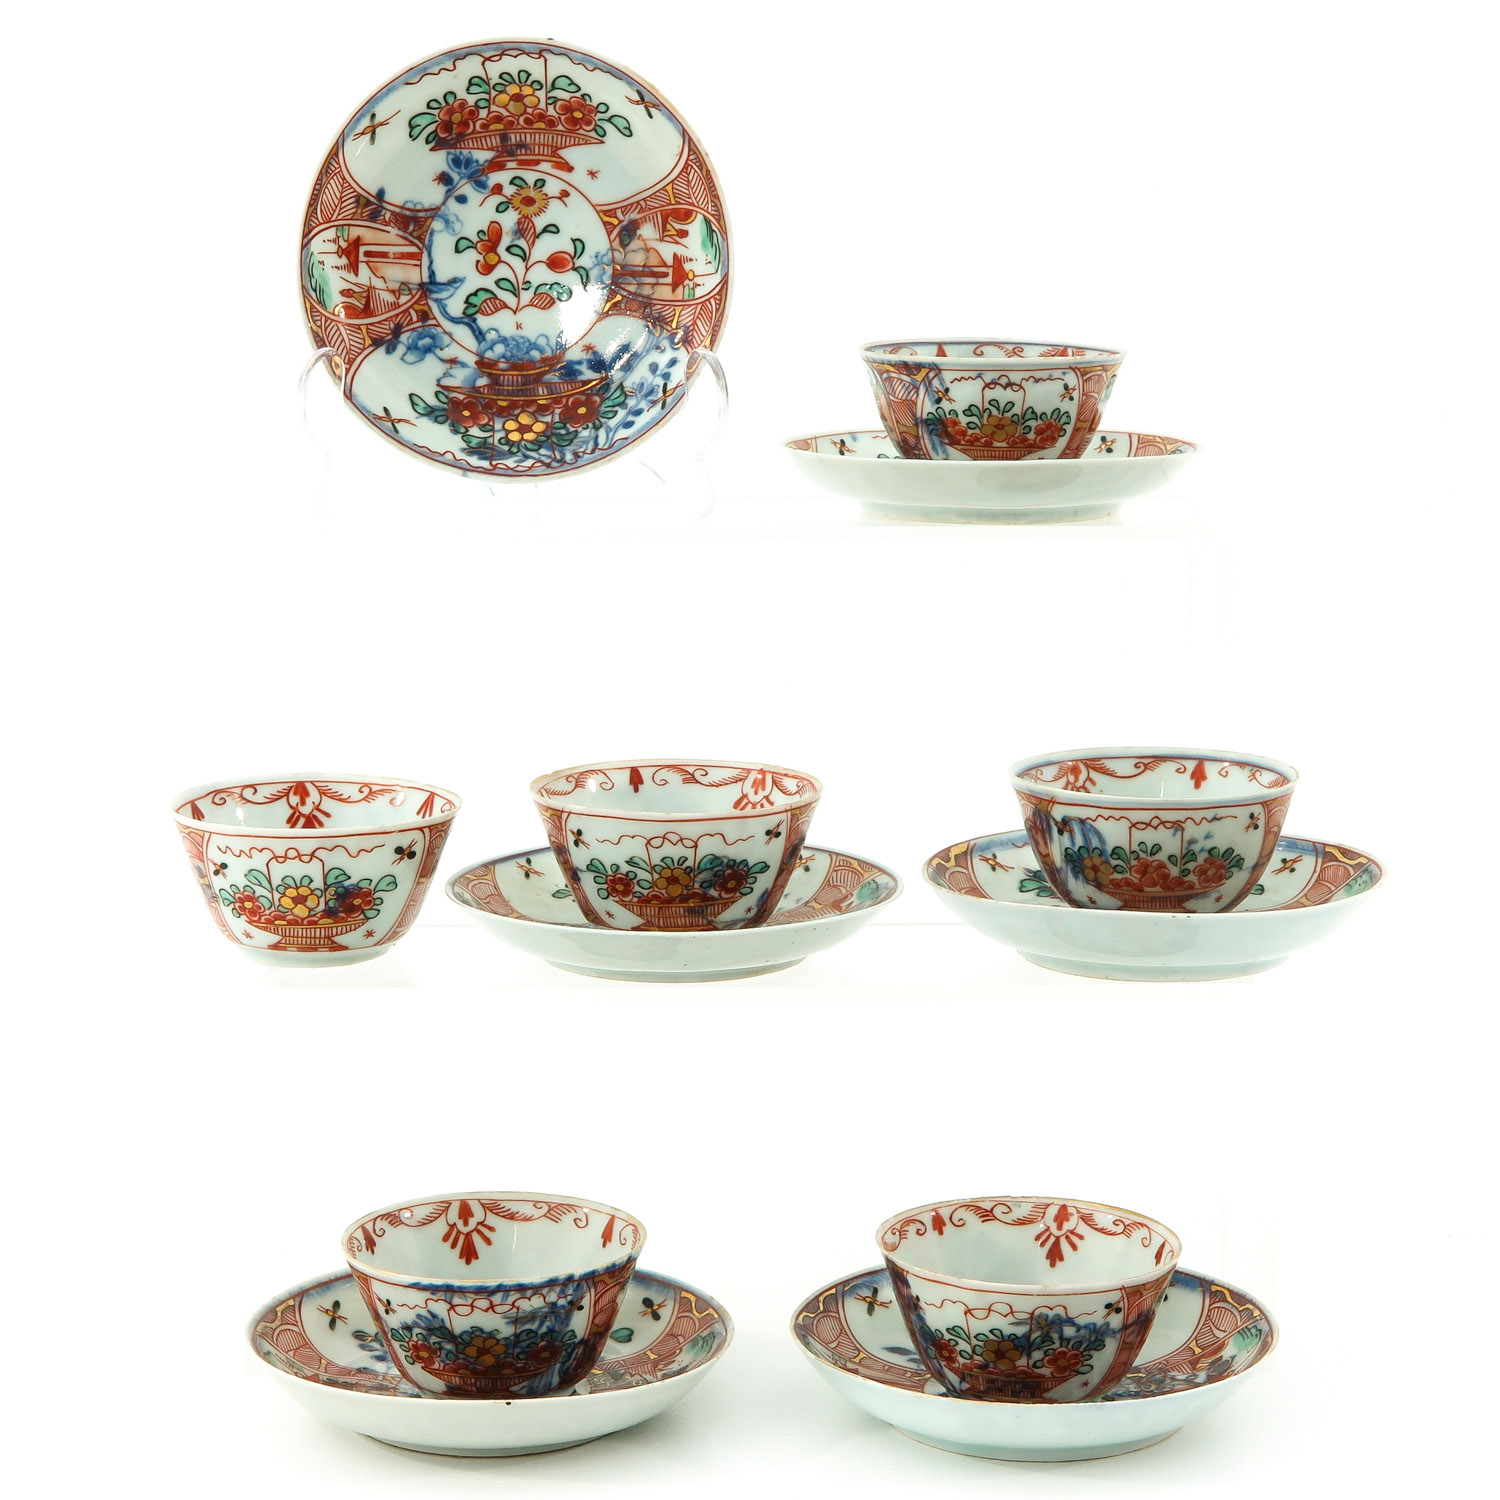 A Series of 6 Cups and Saucers